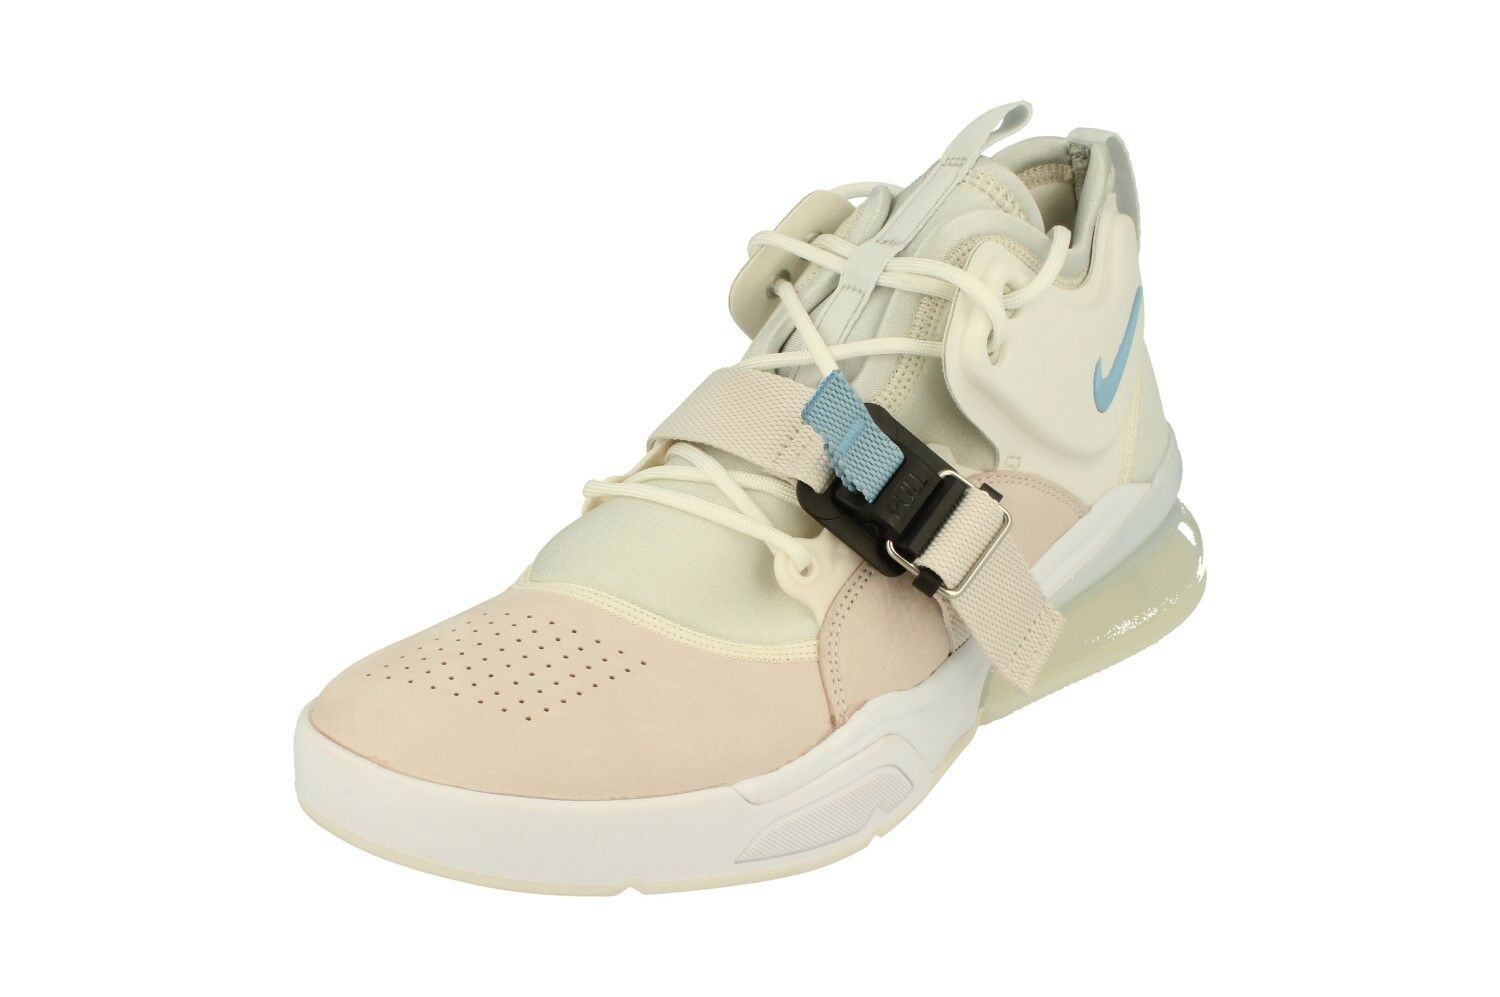 Nike Air Force 270 Mens Hi Top Trainers AH6772 Sneakers shoes 003